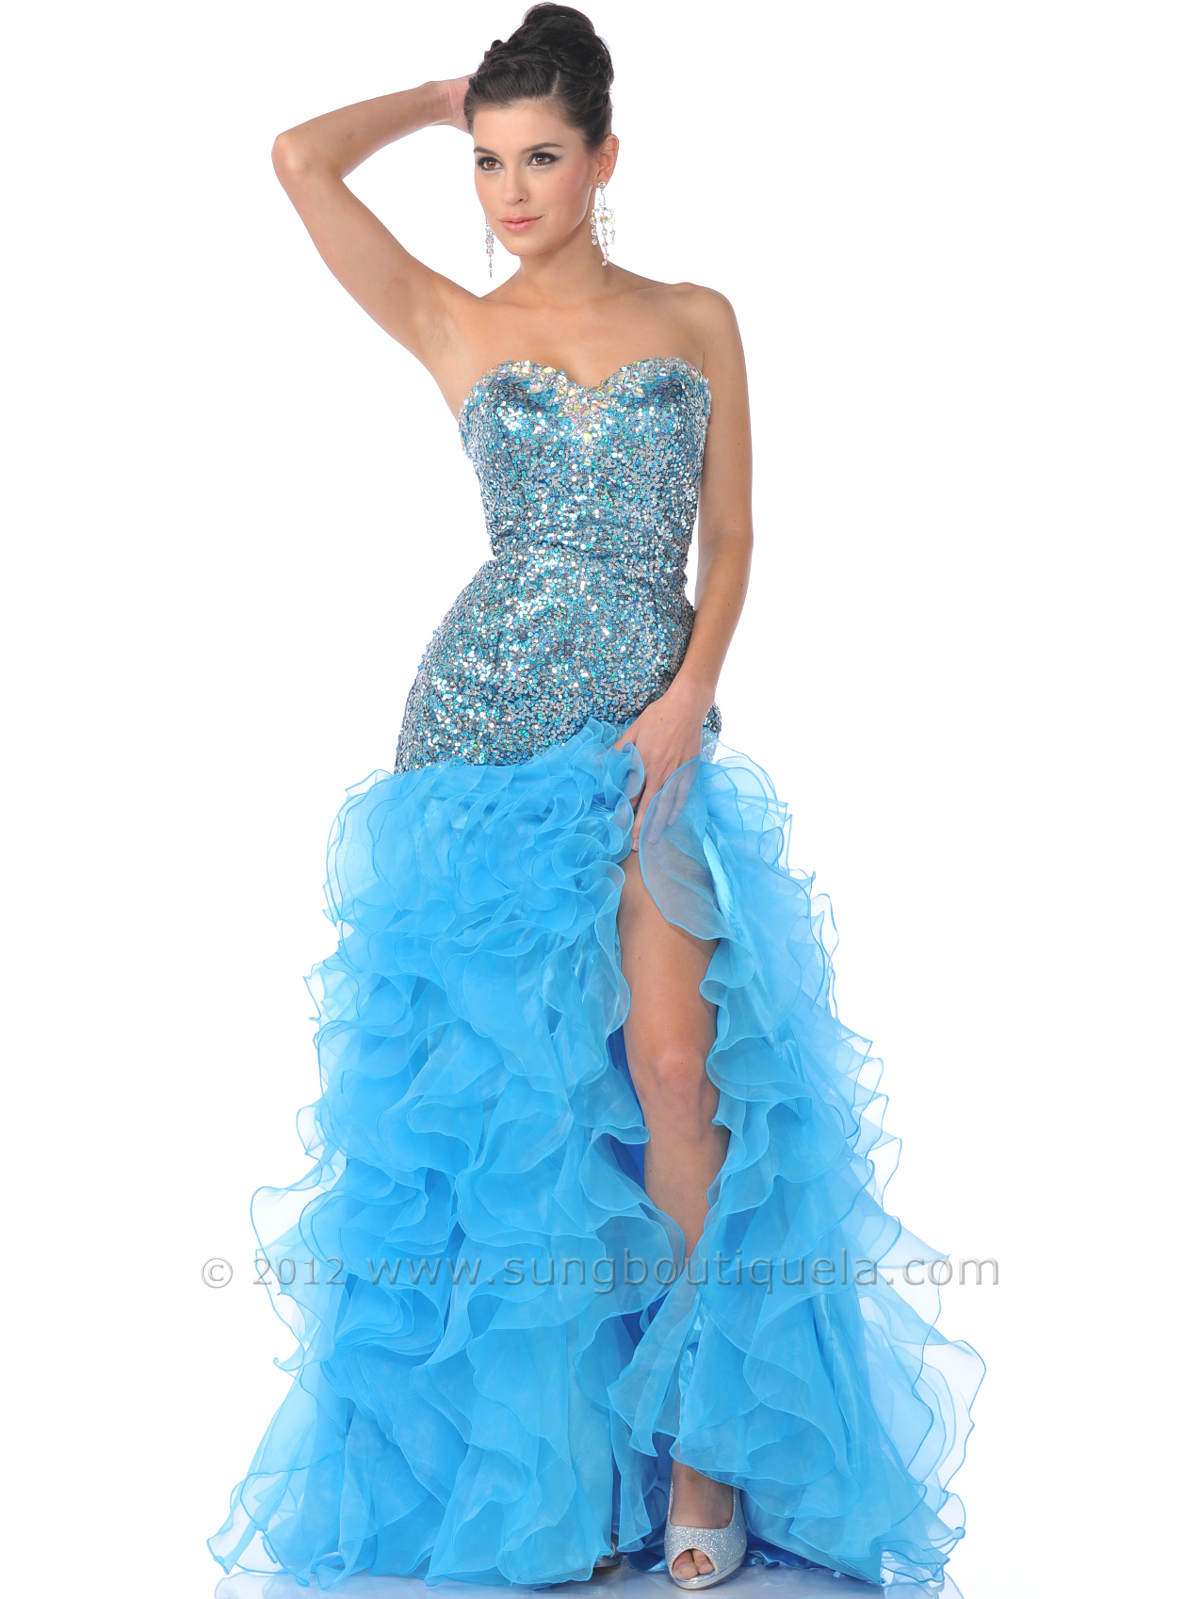 Turquoise Strapless Sequin Top Prom Dress with Ruffled Skirt ...